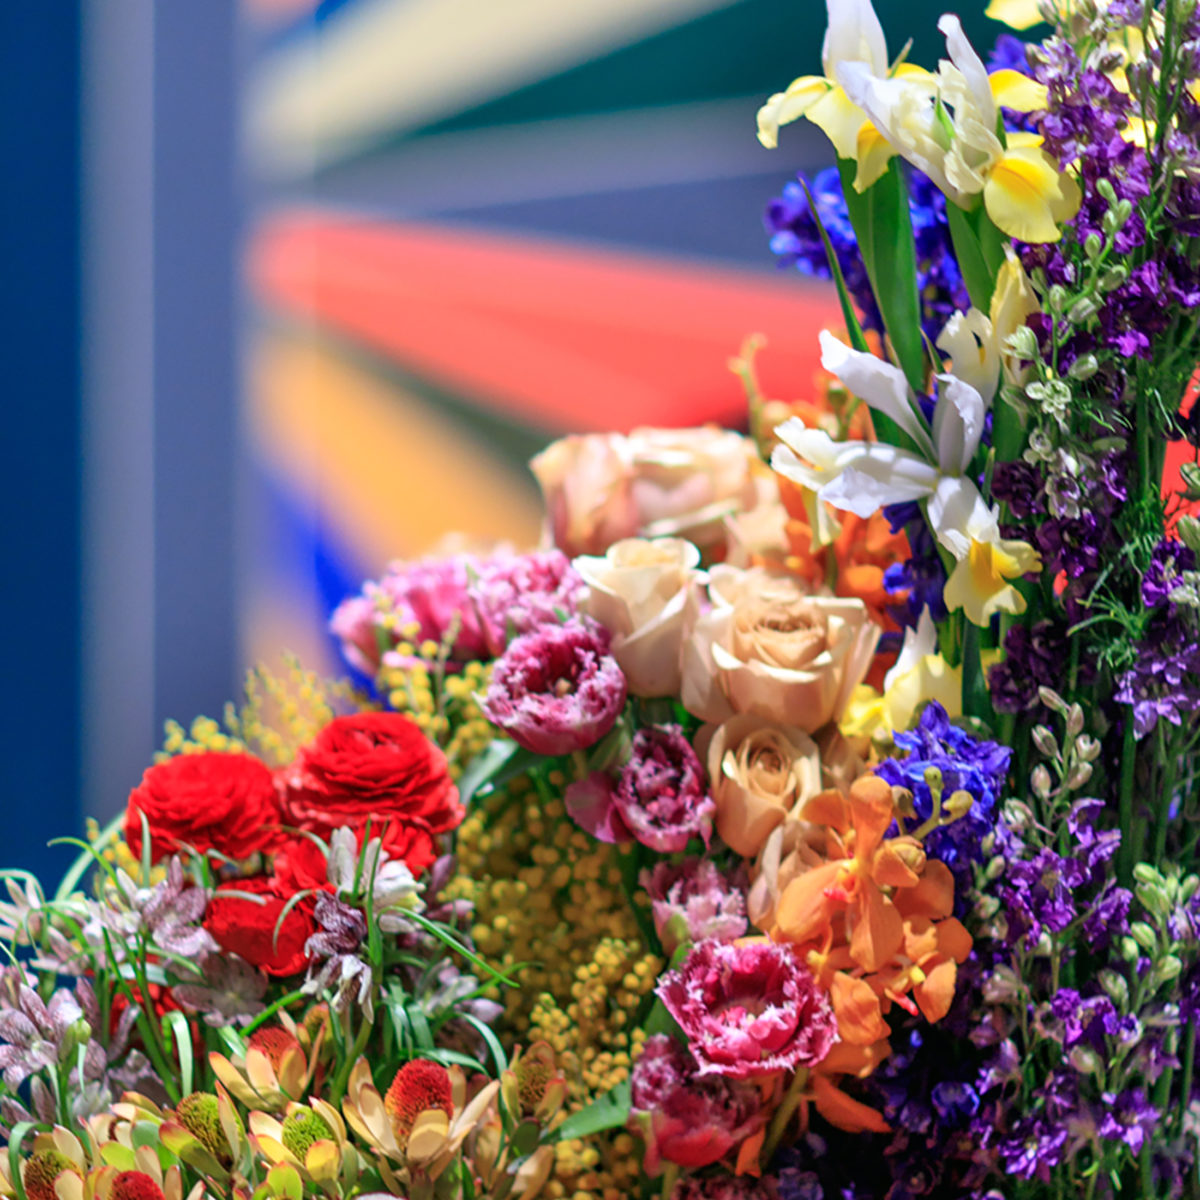 Festival of fine arts and flowers 2021